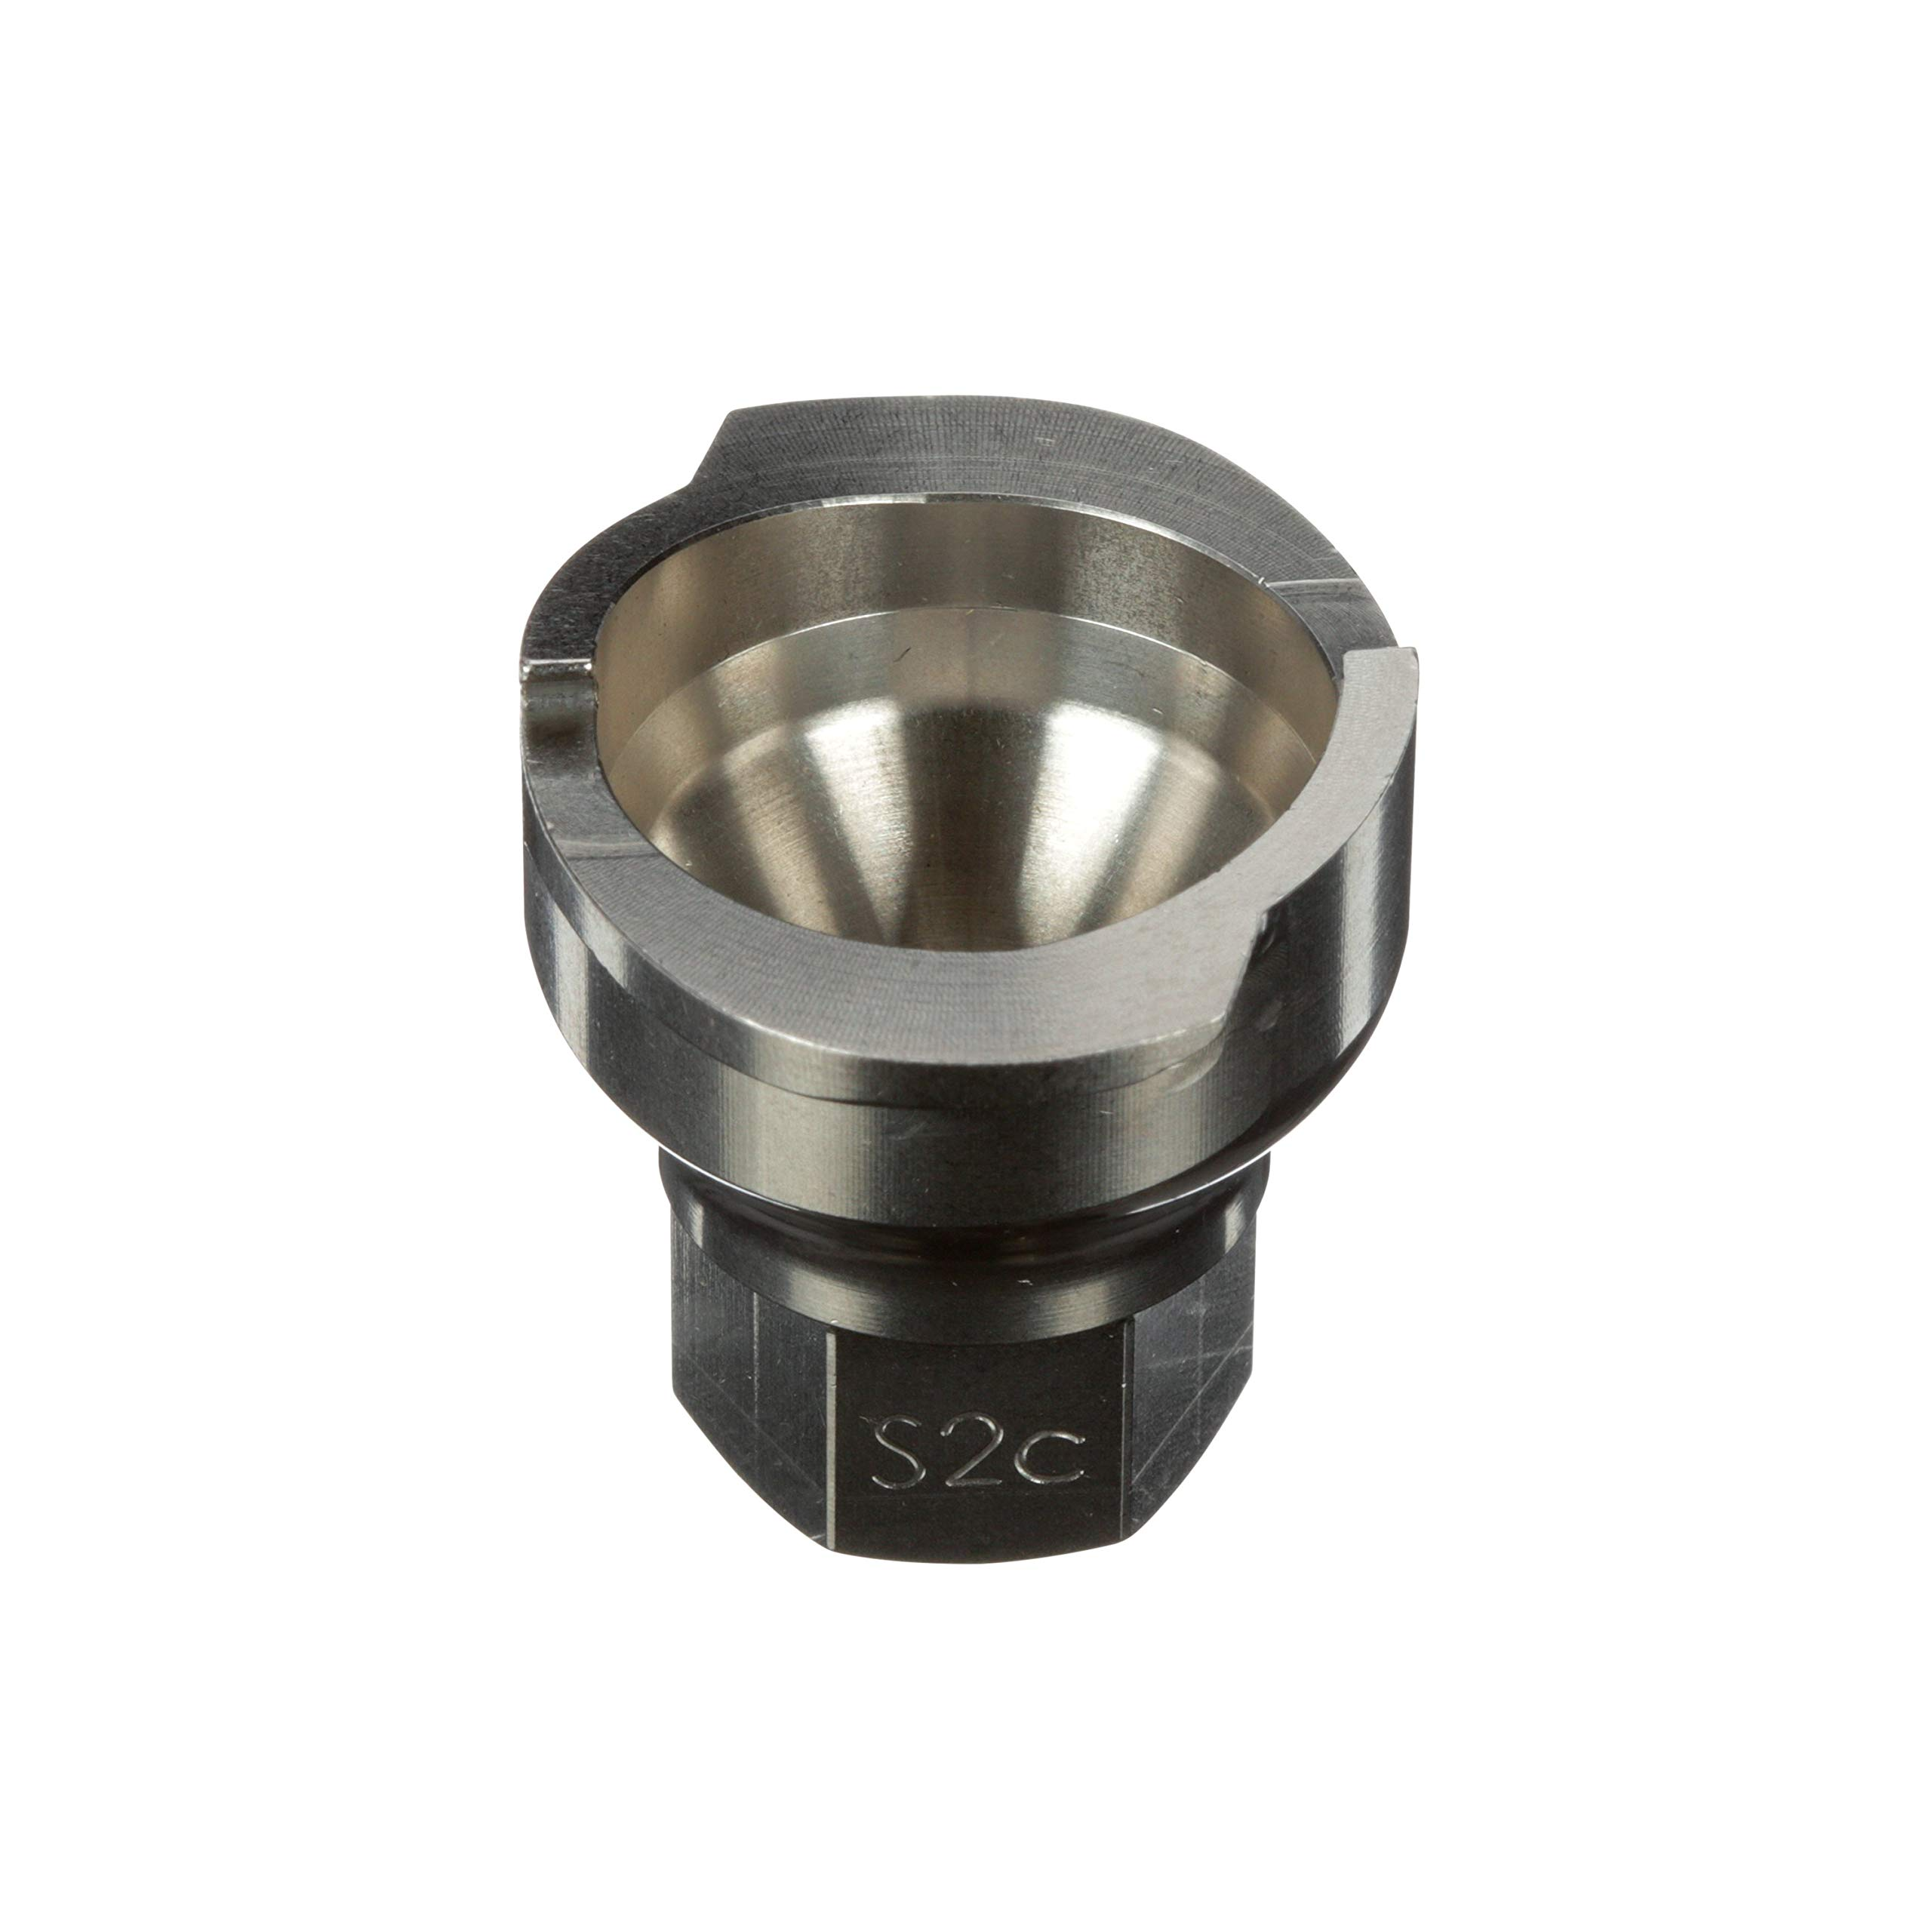 PPS 26003 3M 16 mm Female, 1.5 mm Thread Series 2.0 Adapter